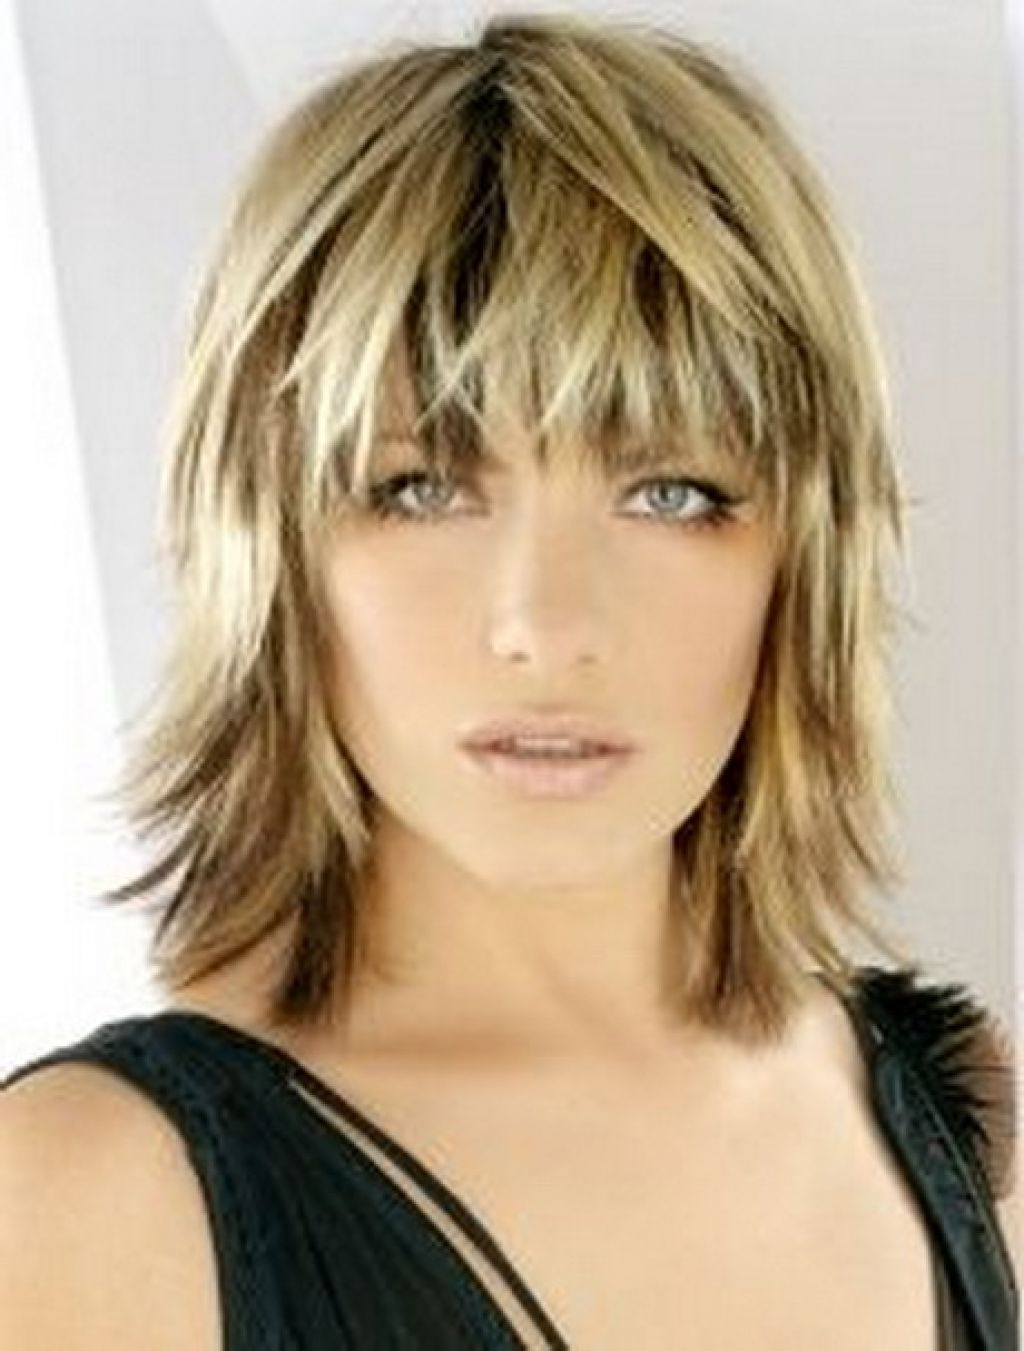 Medium Length Choppy Layered Hairstyles – Hairstyle For Women & Man Intended For Best And Newest Medium Hairstyles With Choppy Layers (View 13 of 20)